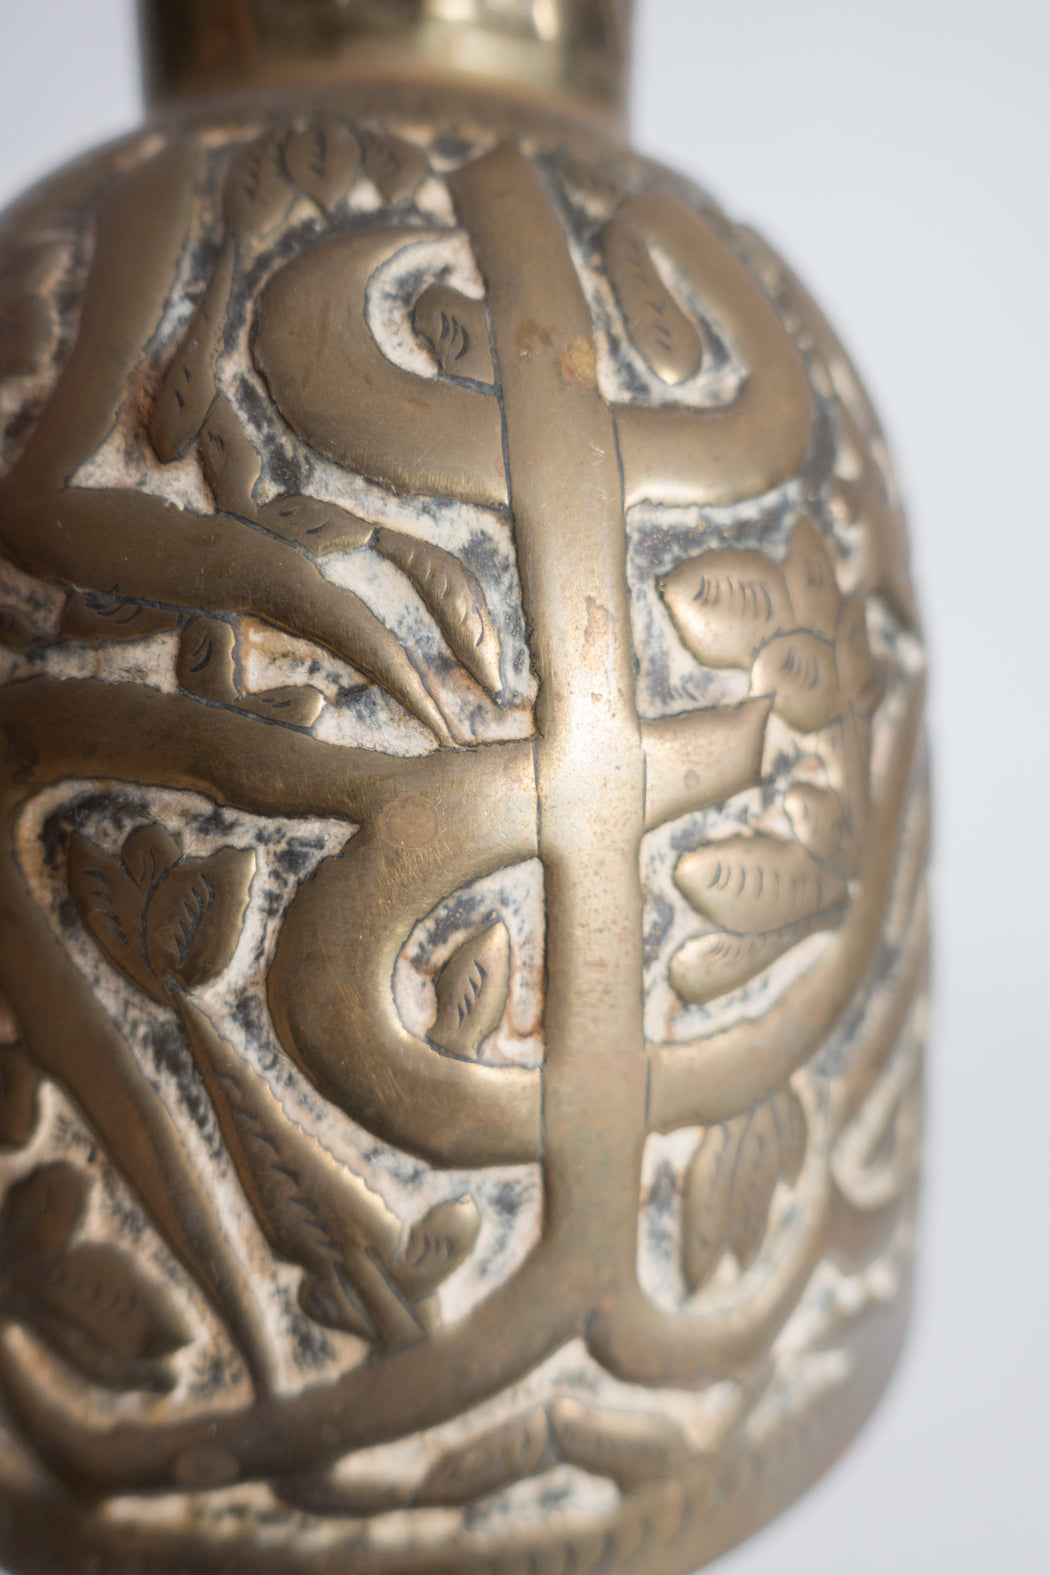 Vintage Brass Vase with Arabic Calligraphy